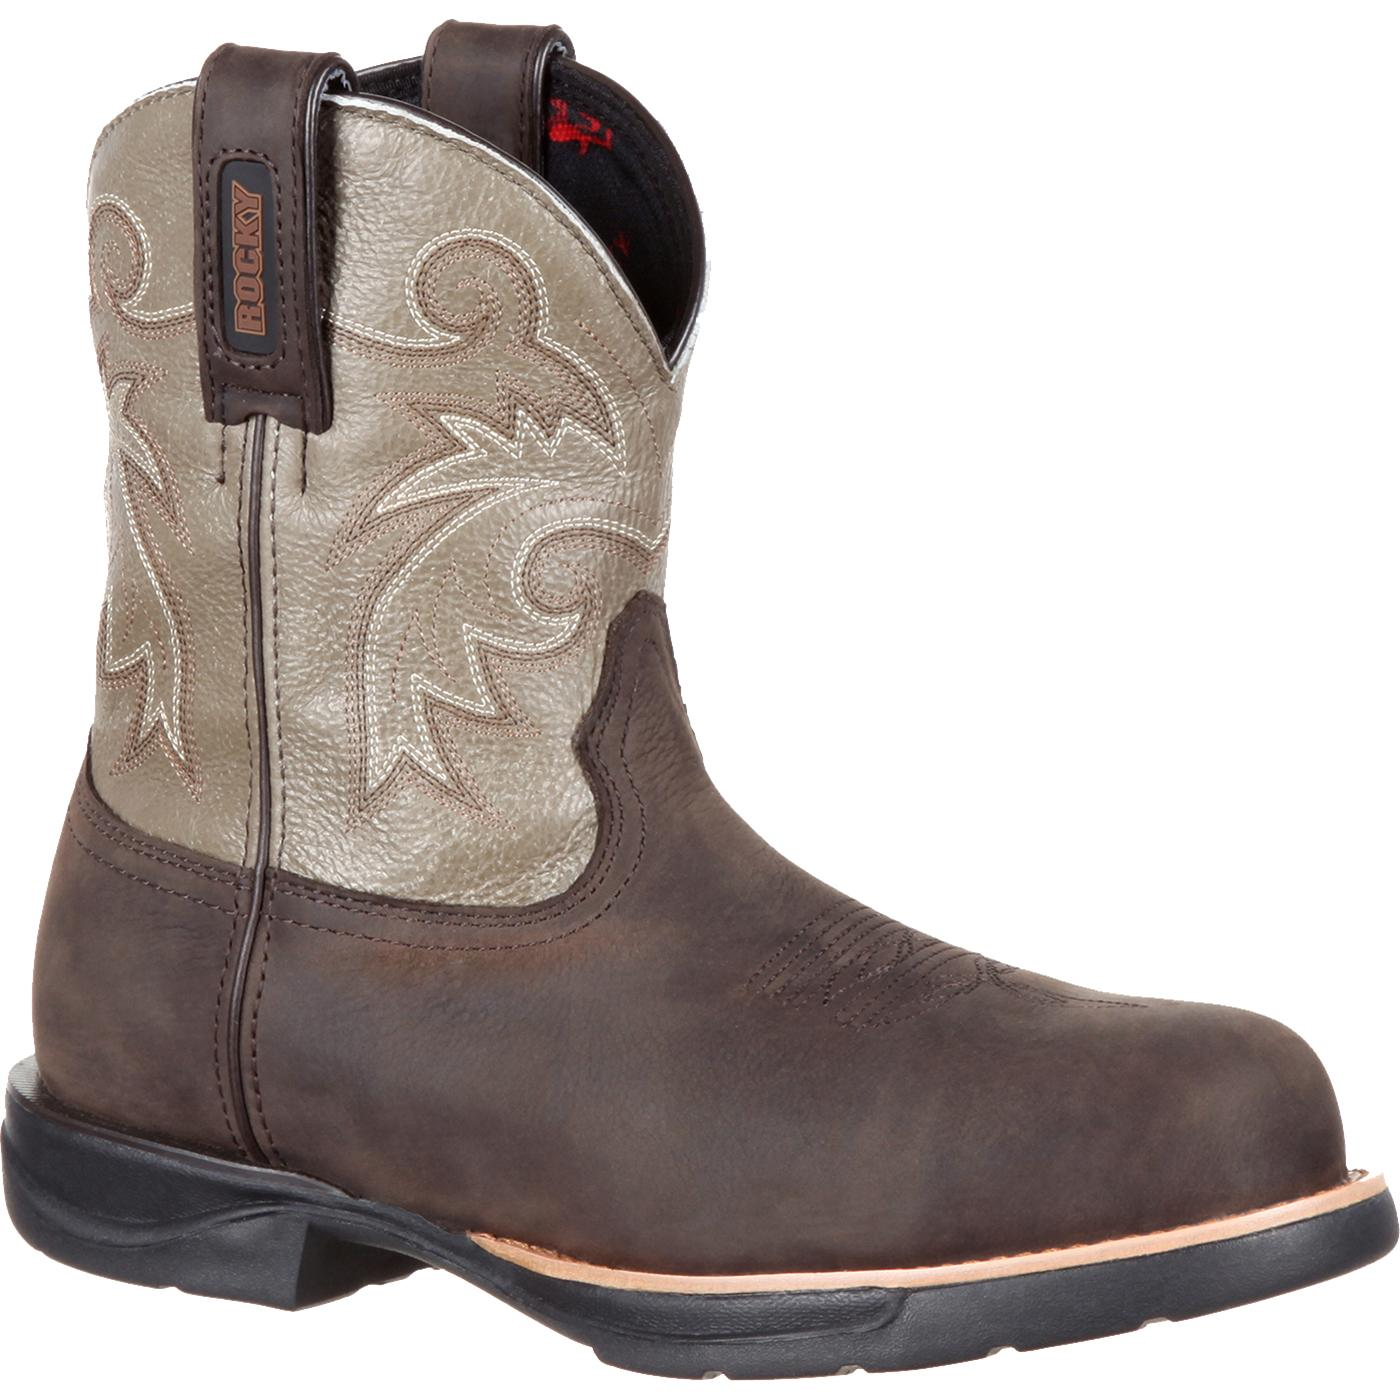 Rocky LT - Women's Brown-Cherry Pink Saddle Western Boots